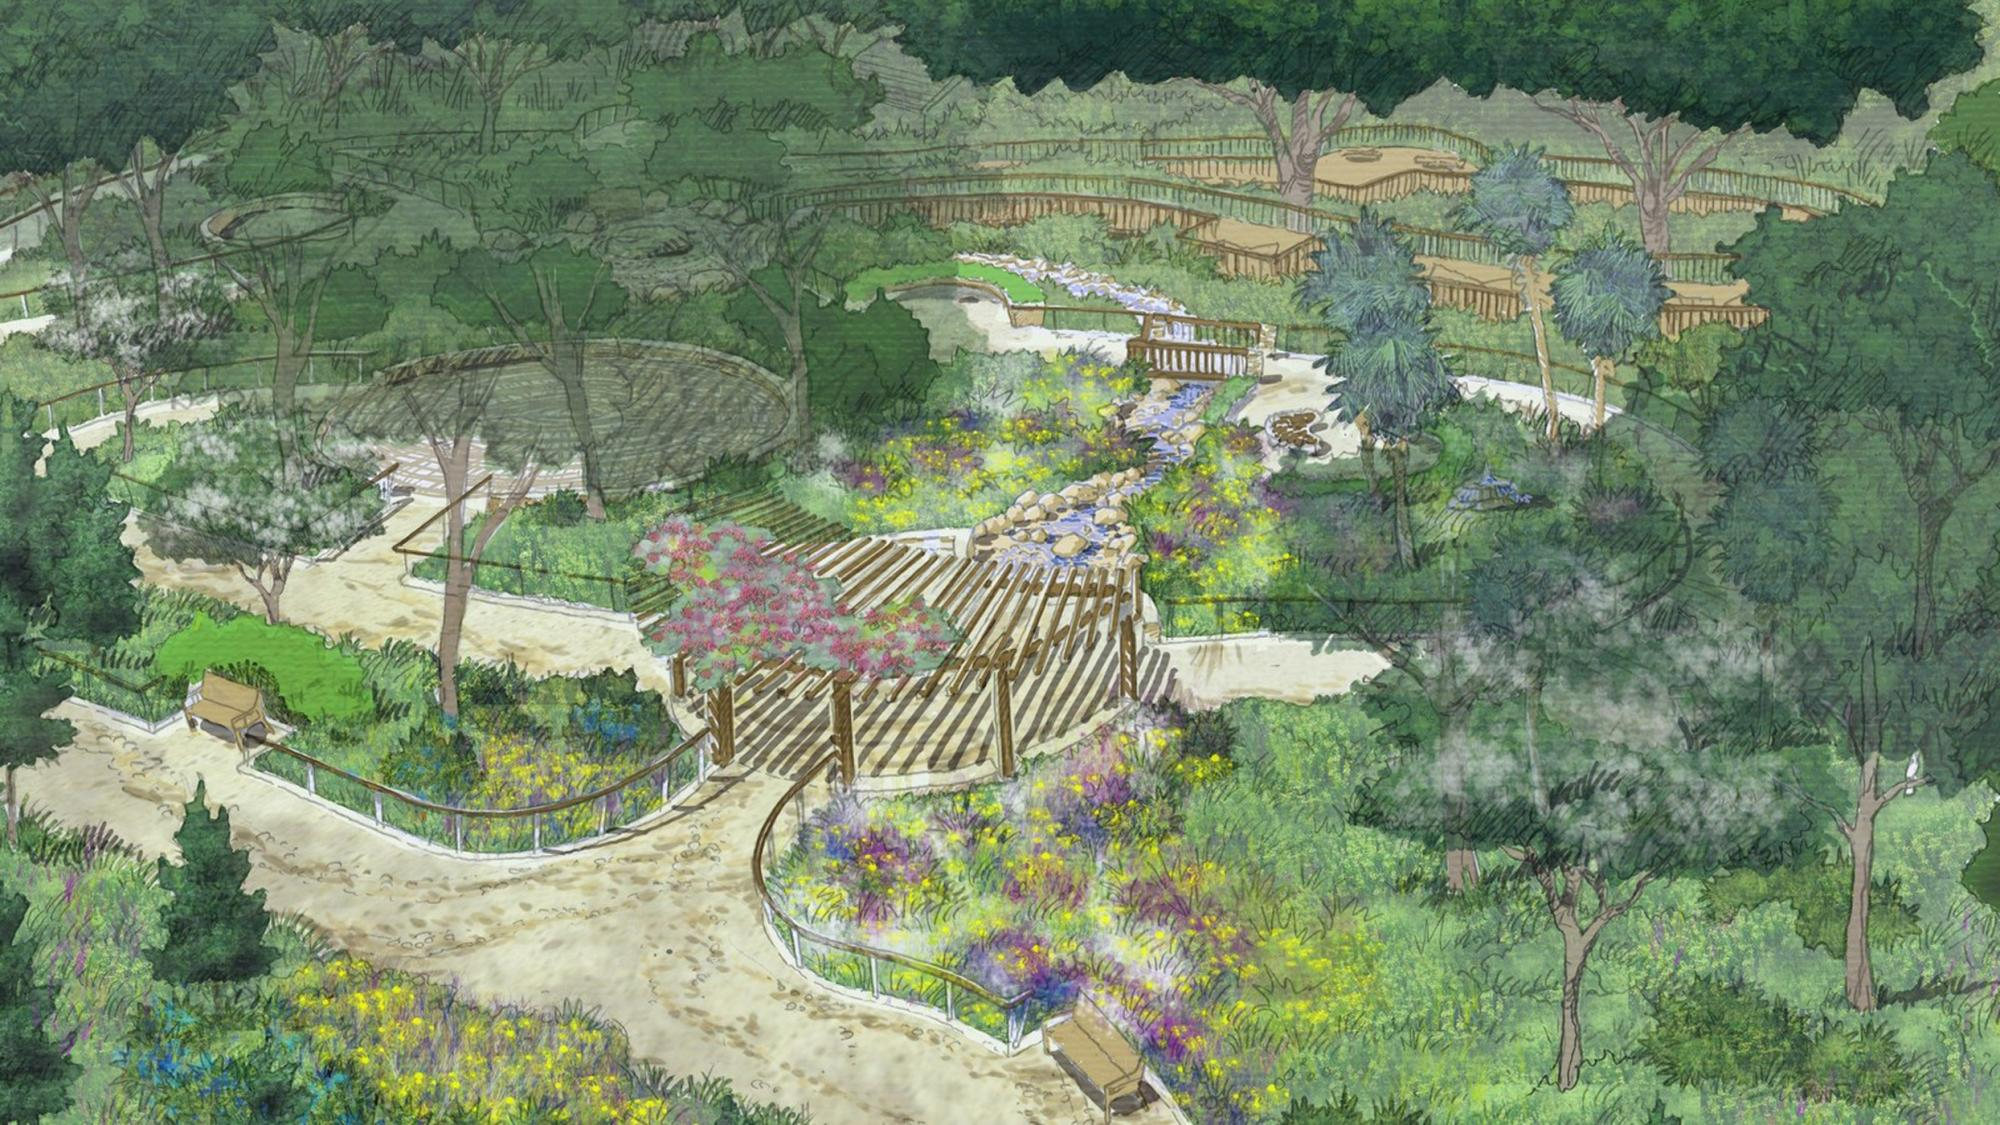 ADU Partners With Florida DEP To Develop Innovative Serenity Garden For  People Of All Abilities At Wekiwa Springs State Park